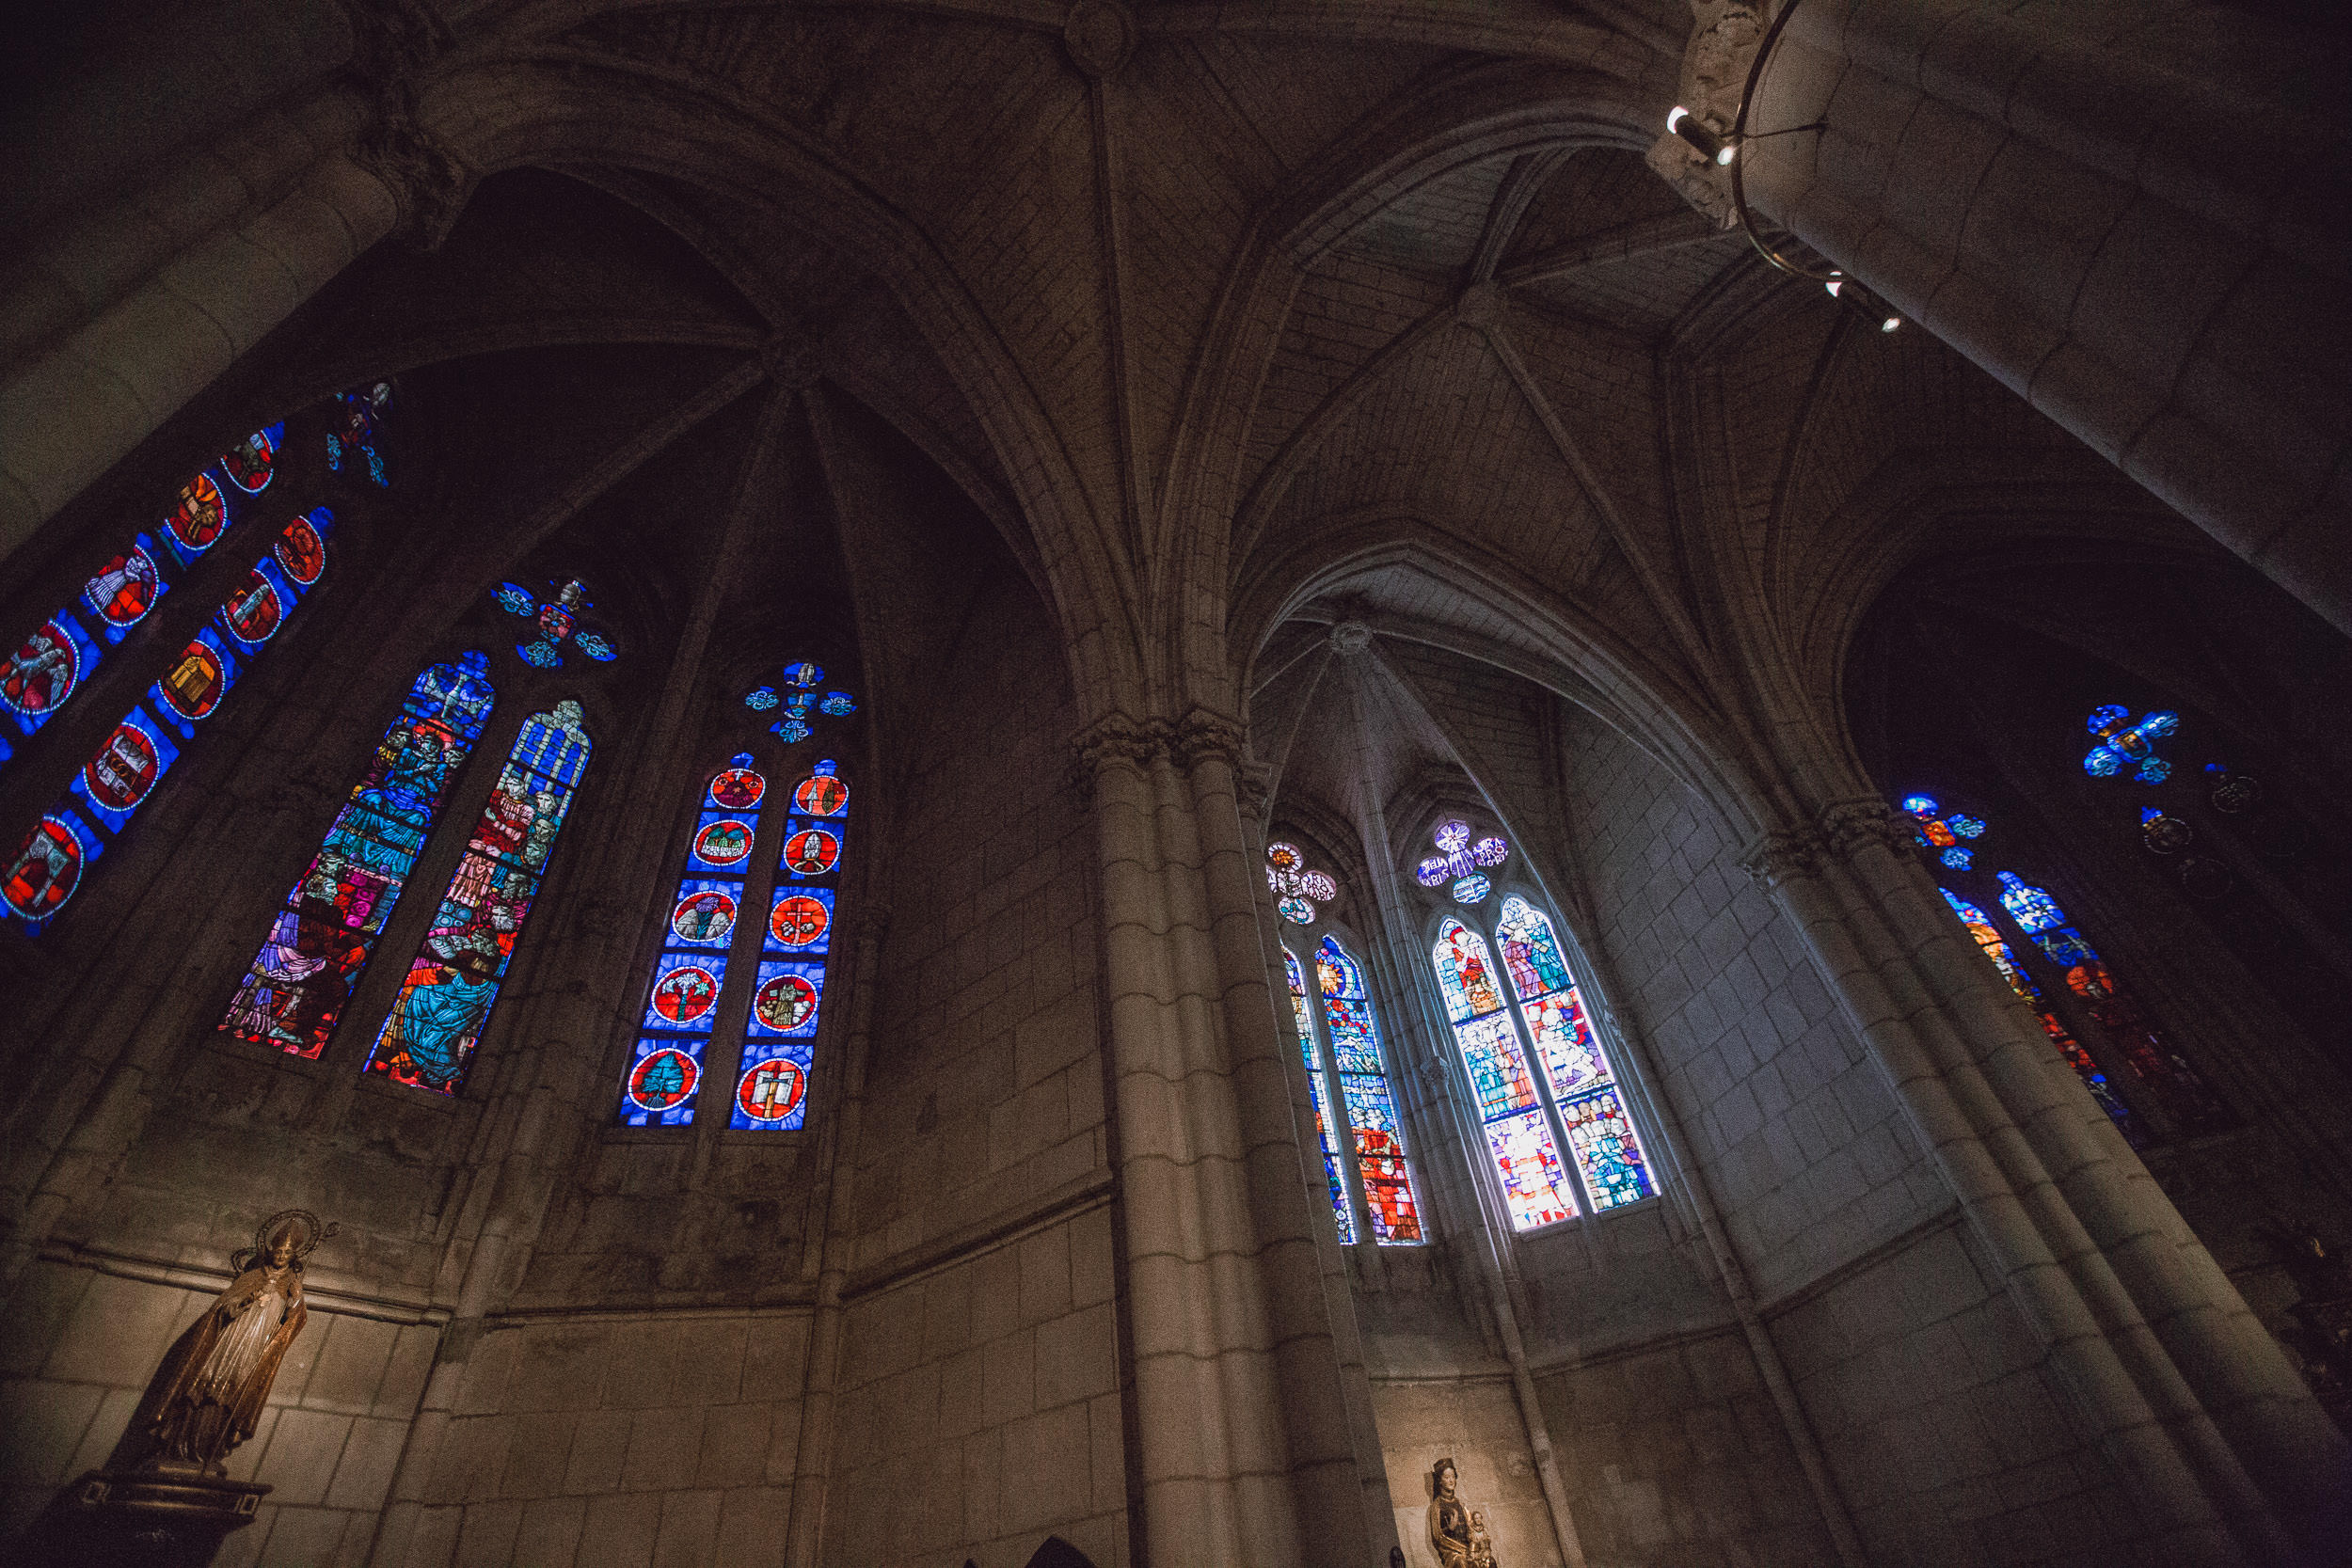 Beautiful Stained Glass Windows in the Santa Maria Catherdral, Vitoria-Gasteiz, Spain